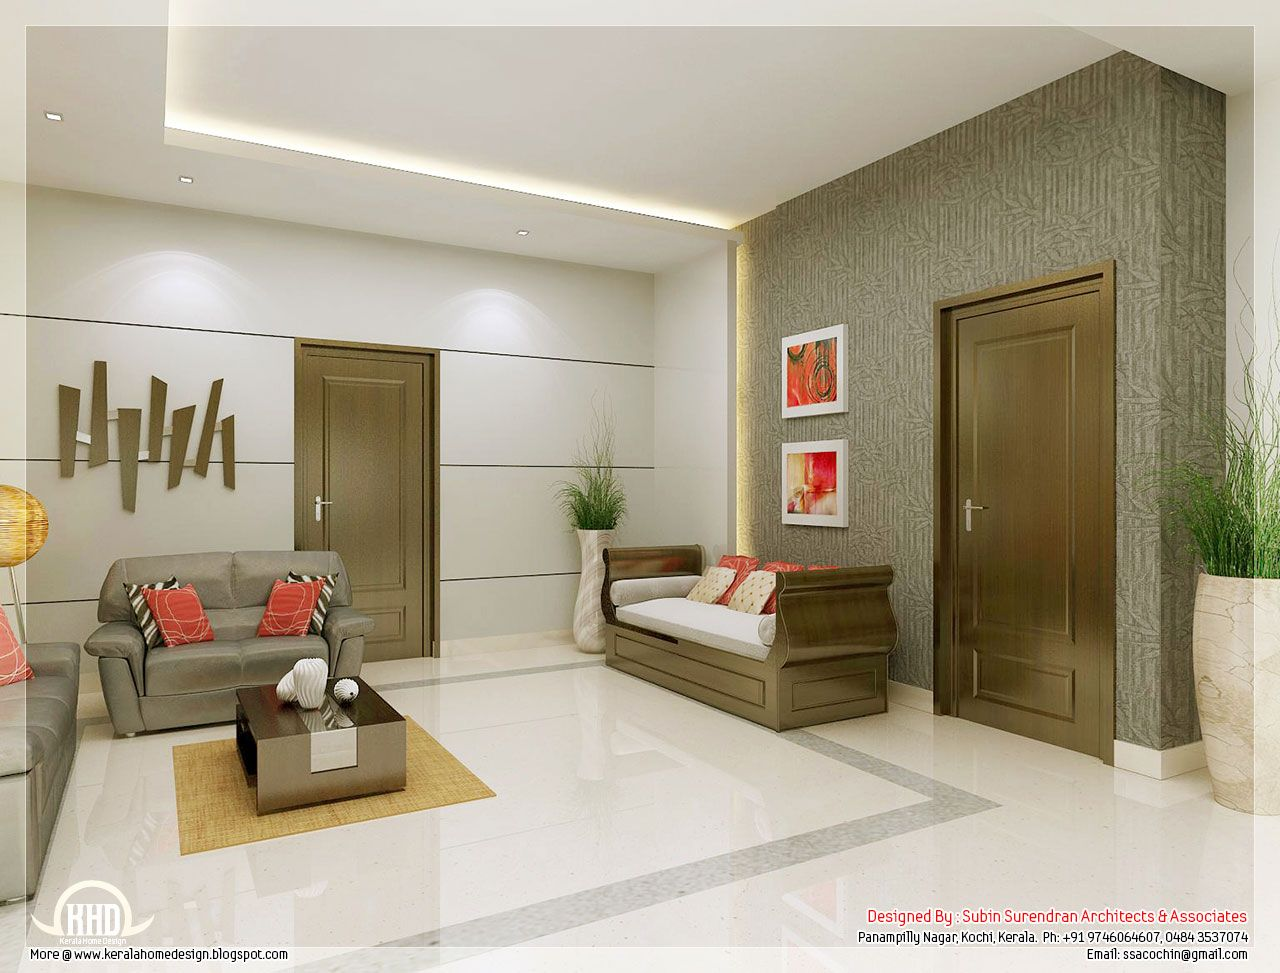 d Home Interior Designs In Kerala Kerala Home Design And Floor